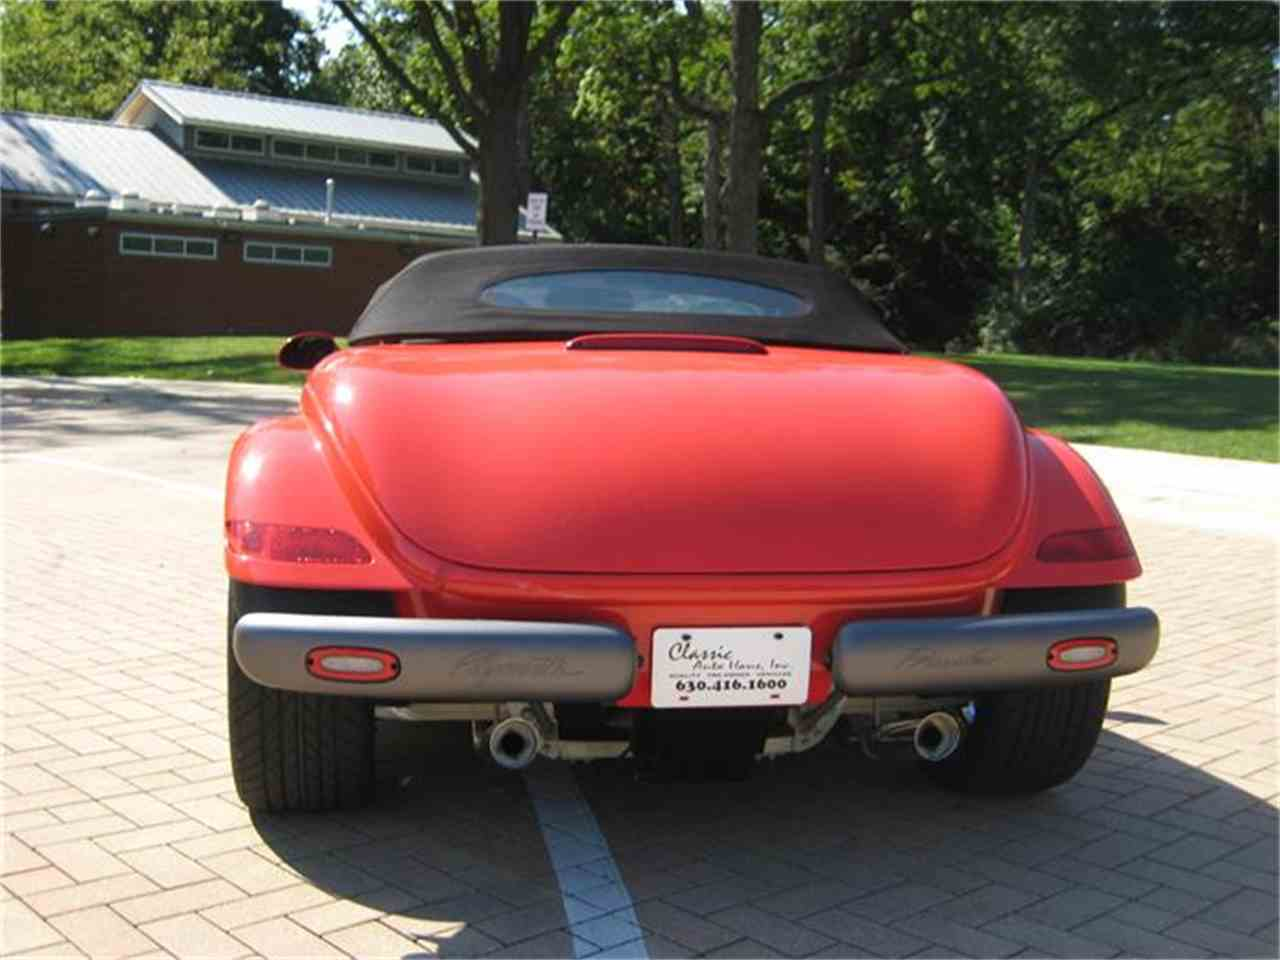 1999 Plymouth Prowler For Sale In Geneva Illinois 60134 on prowler auctions